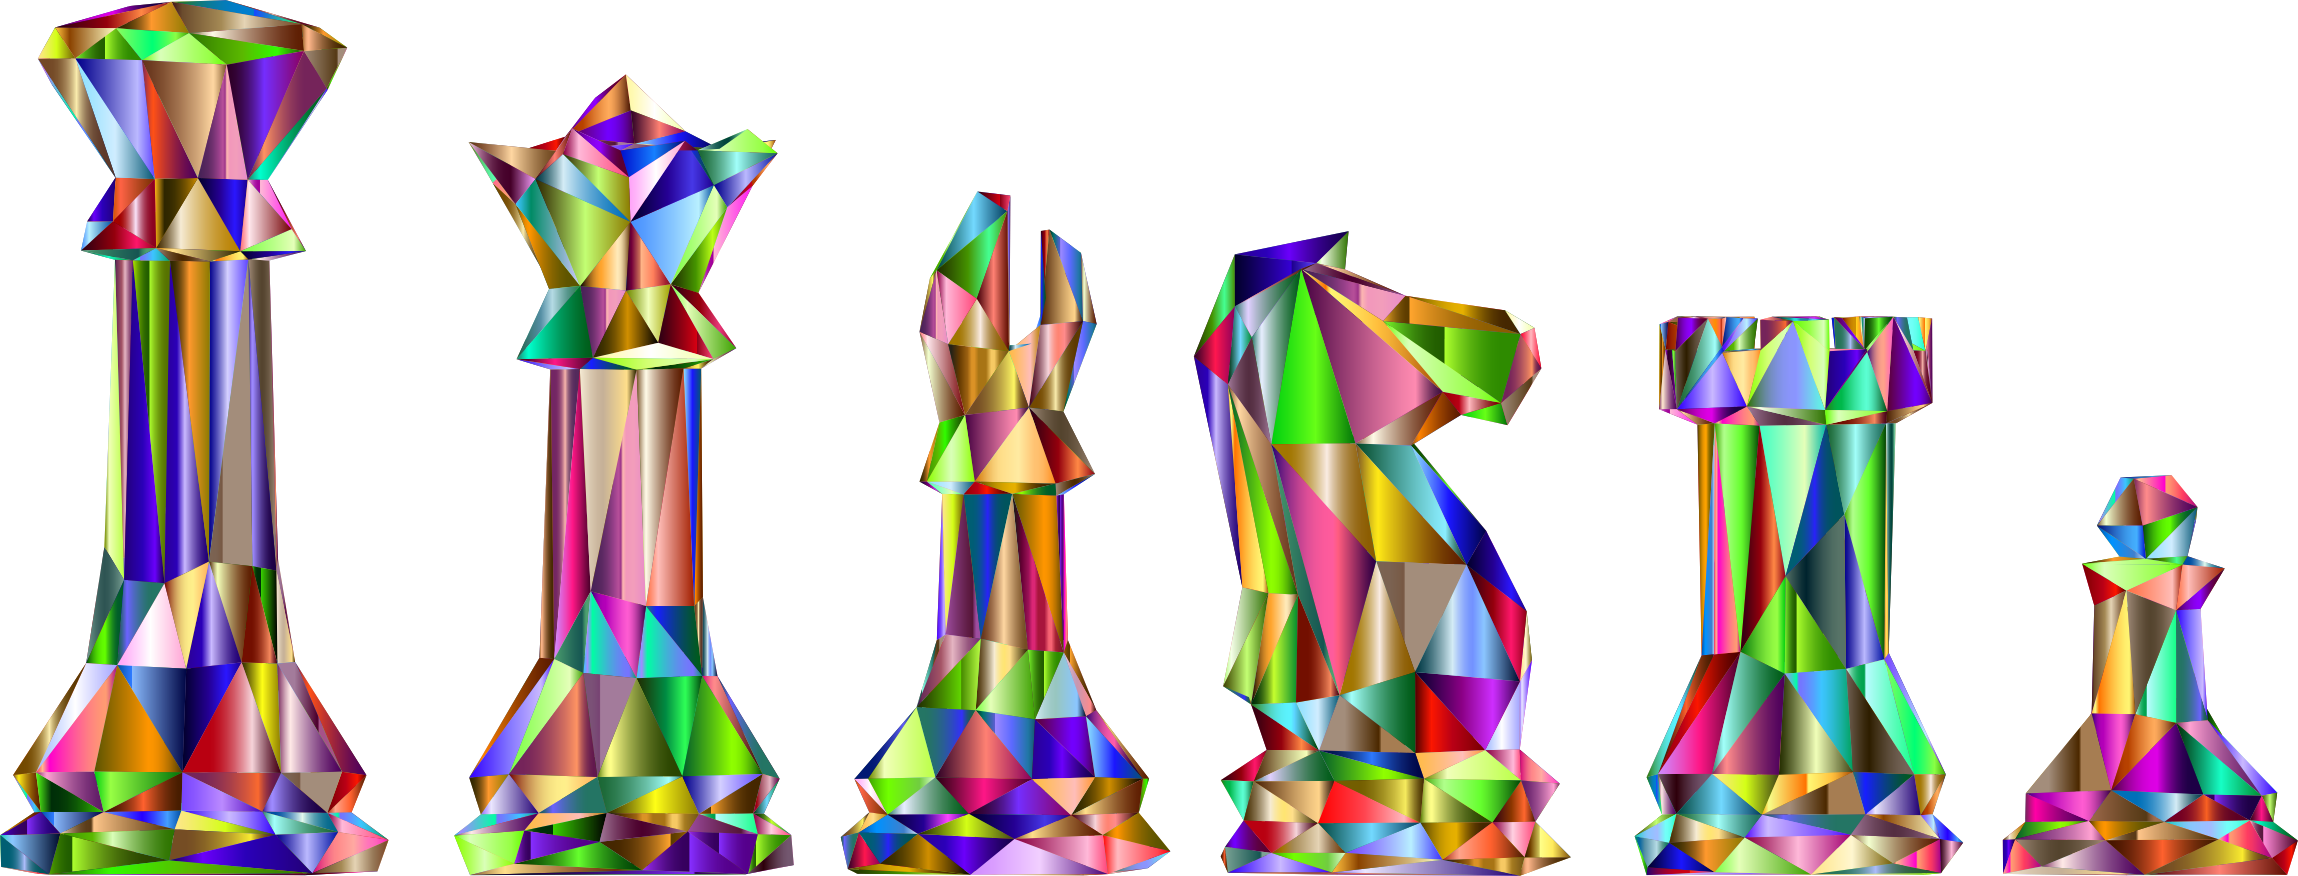 Low Poly Chess Pieces Prismatic 2 by GDJ